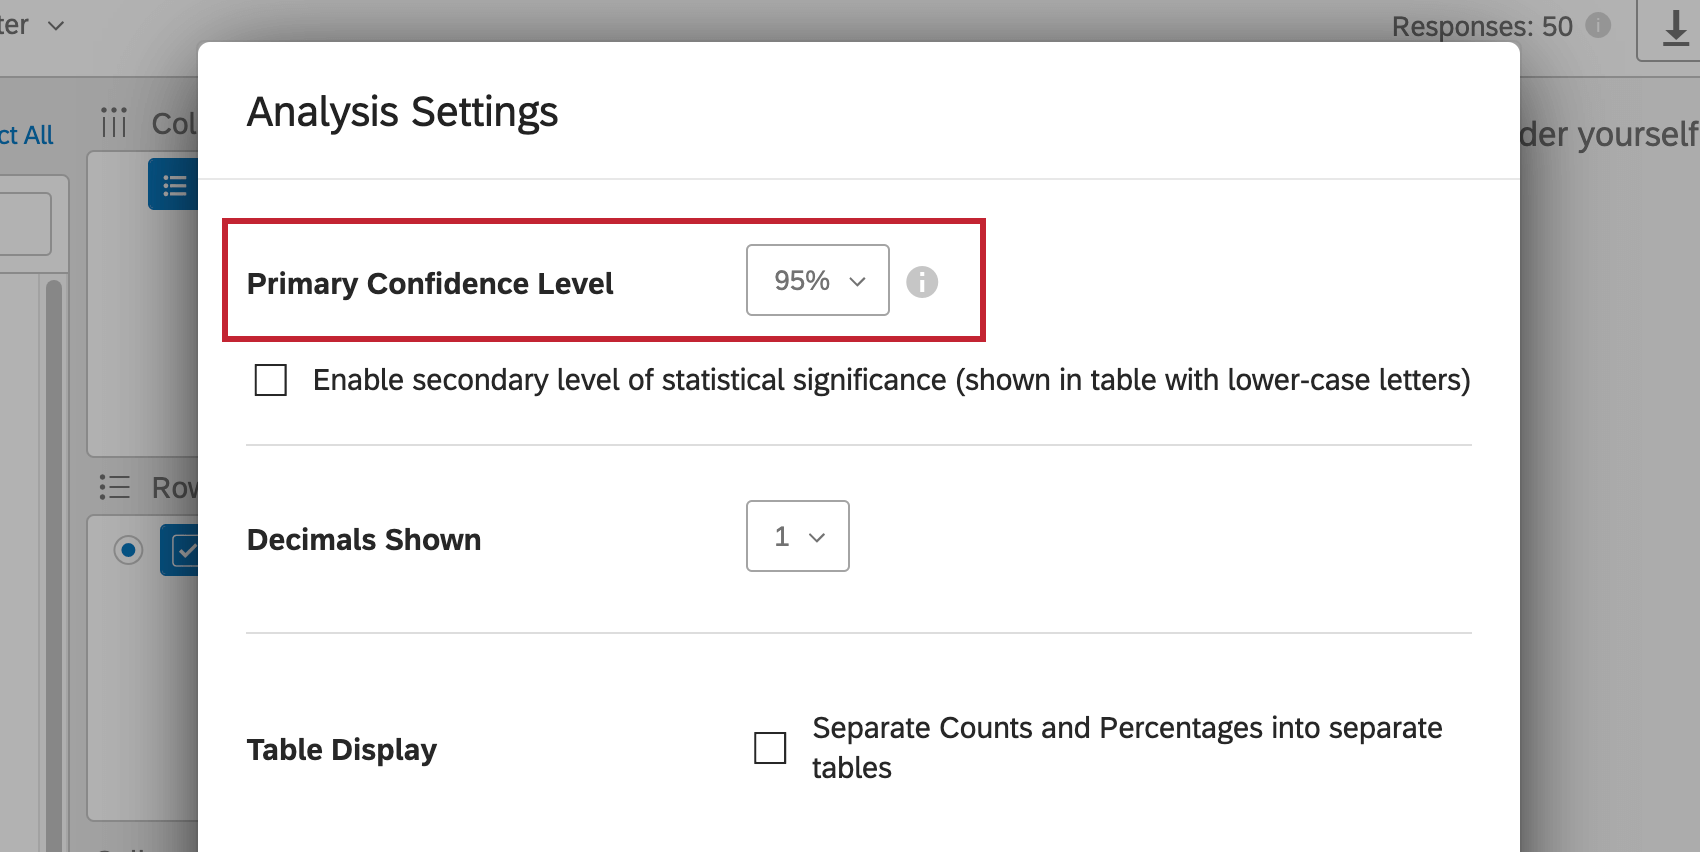 Primary confidence is highlighted